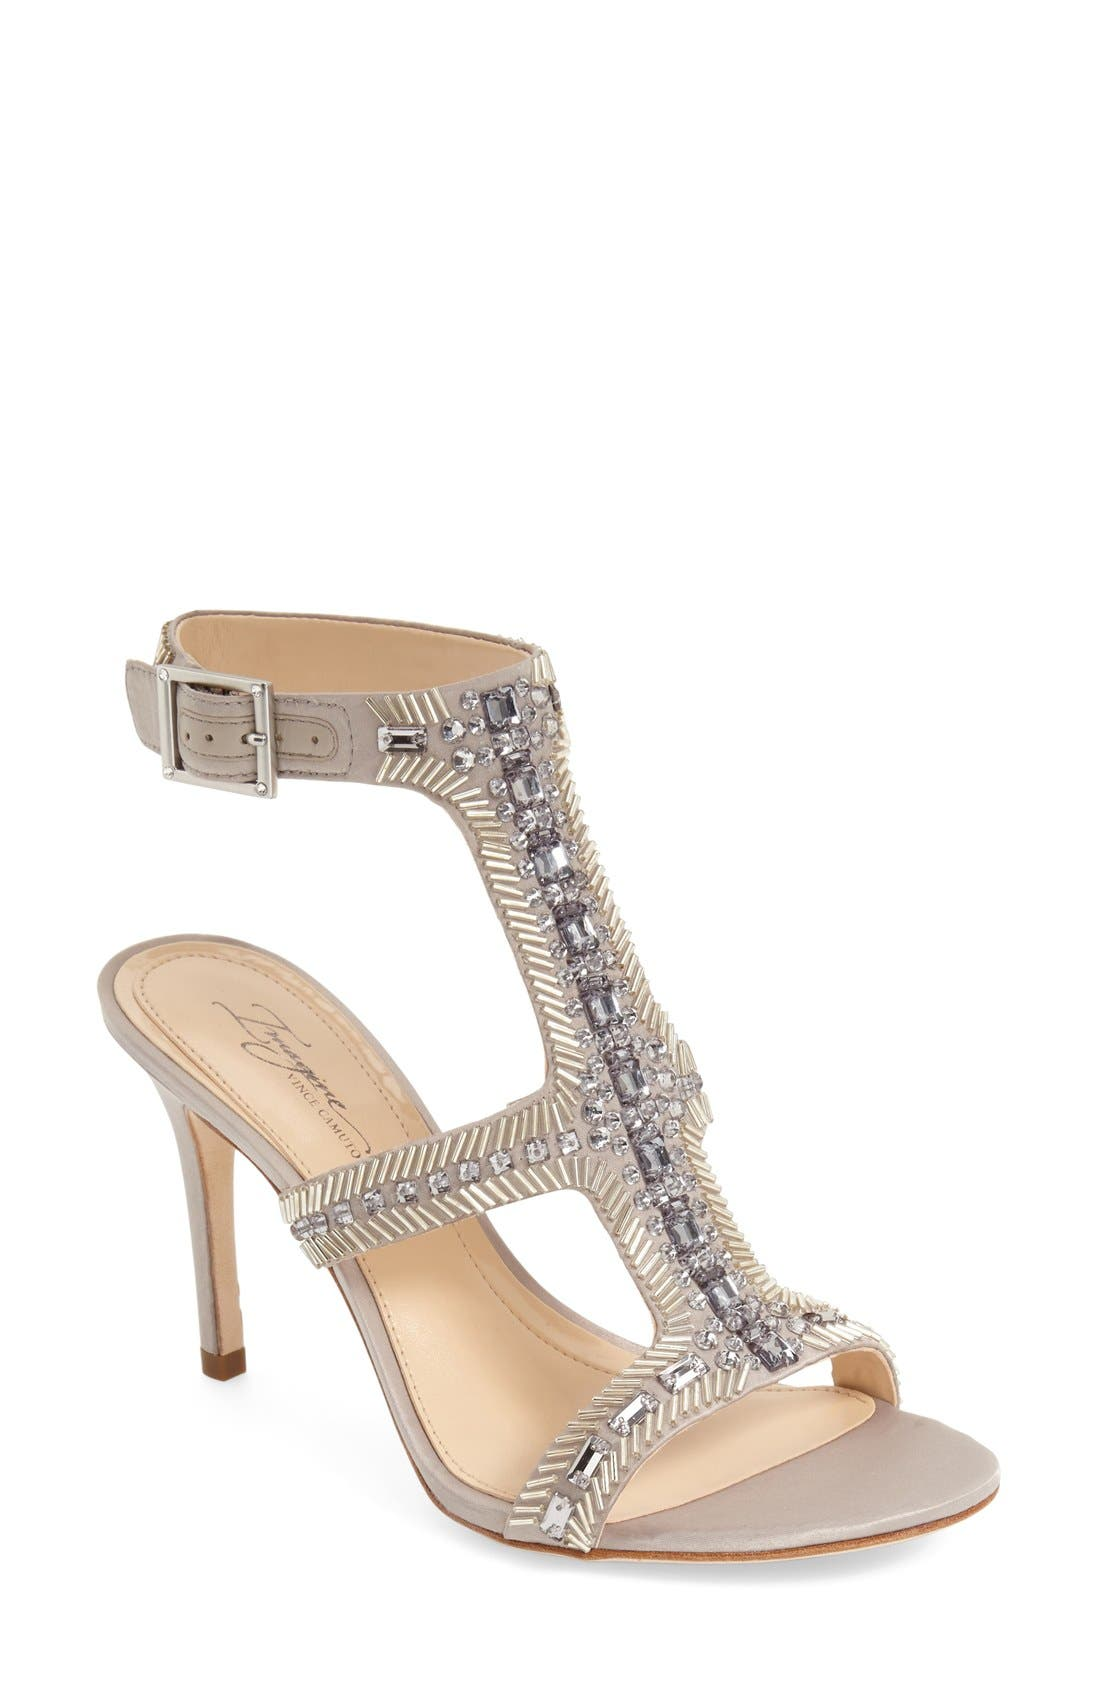 Main Image - Imagine Vince Camuto 'Price' Beaded T-Strap Sandal (Women)